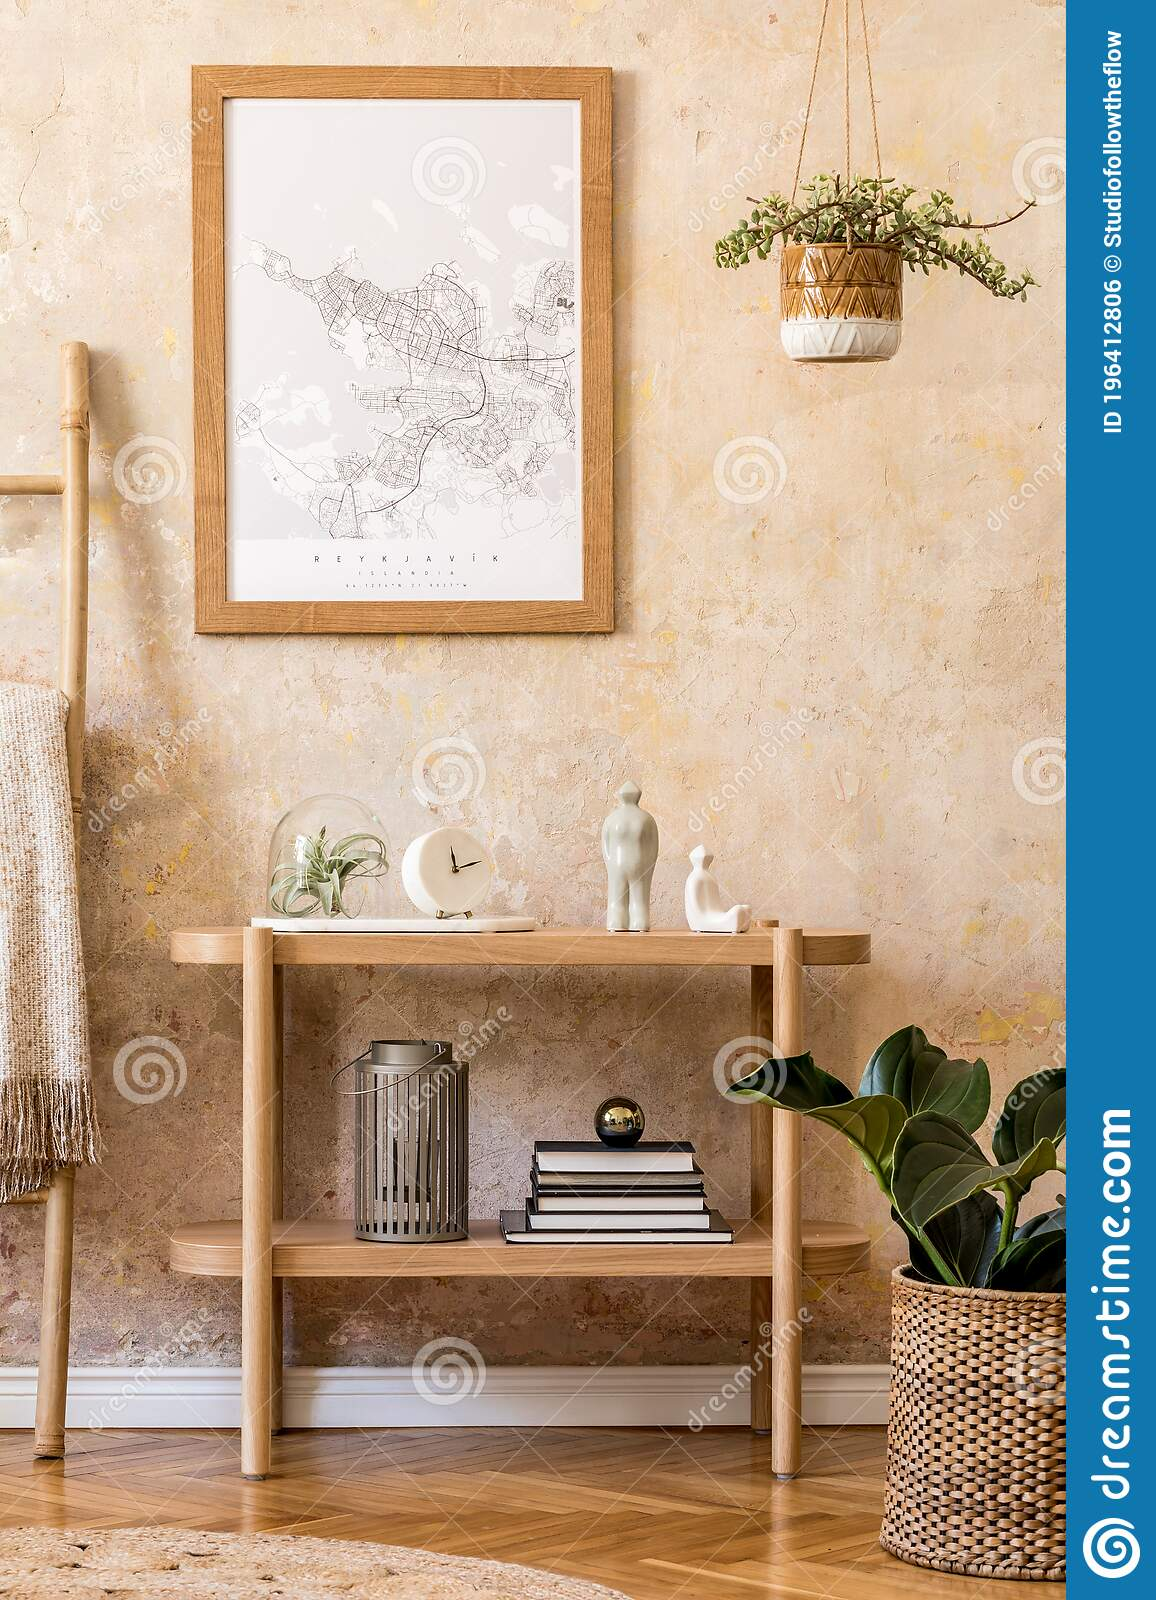 Stylish Scandinavian Interior Of Living Room With Mock Up Poster Frame Wooden Console Plants Ladder Decoration Grunge Wall Stock Photo Image Of Cabinet Copy 196412806